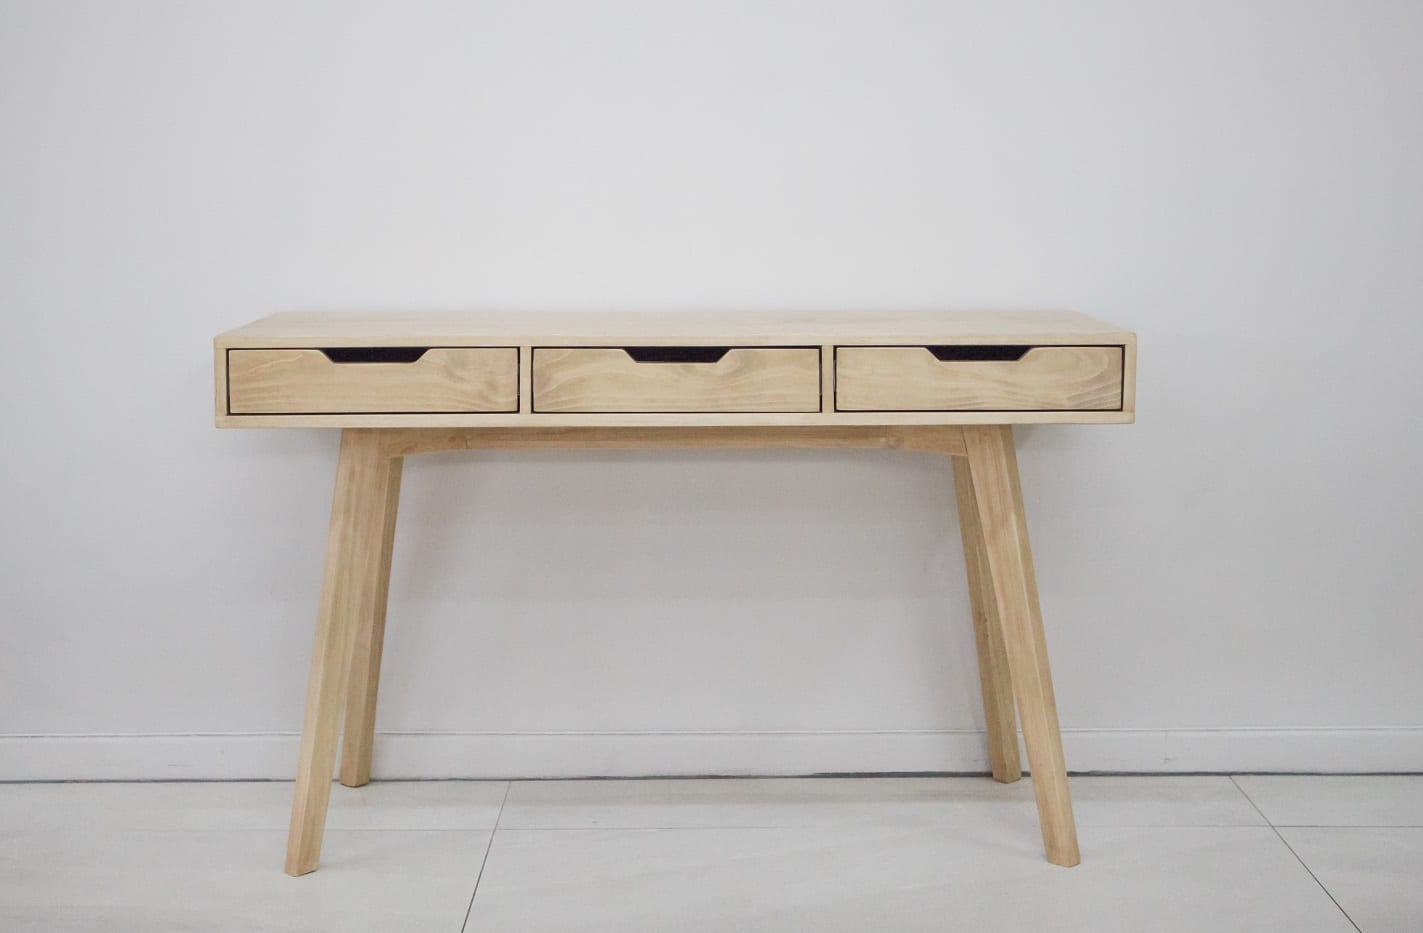 wood desk with 3 drawers for sale